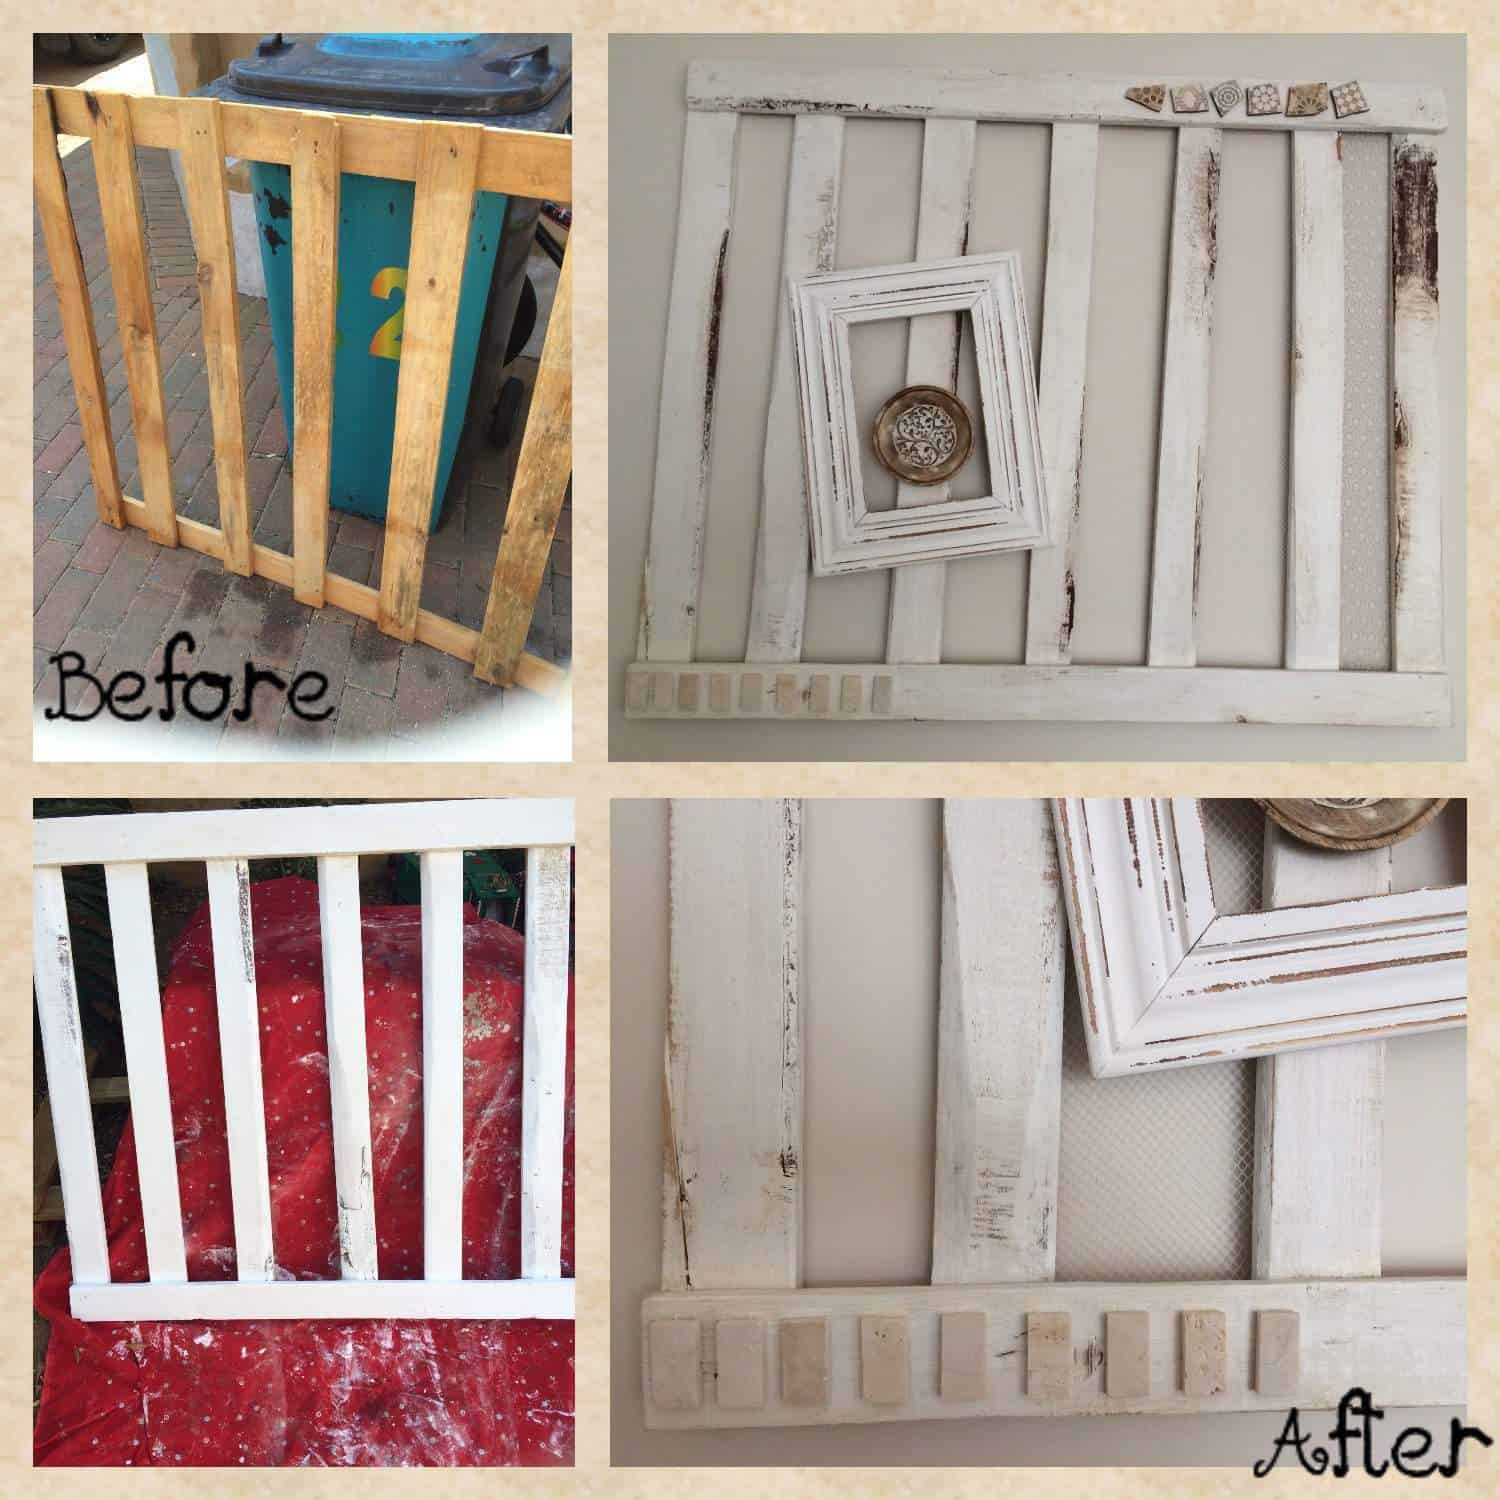 Best ideas about Pallet Wall Art . Save or Pin Decorative Pallet Wall Art • Pallet Ideas • 1001 Pallets Now.